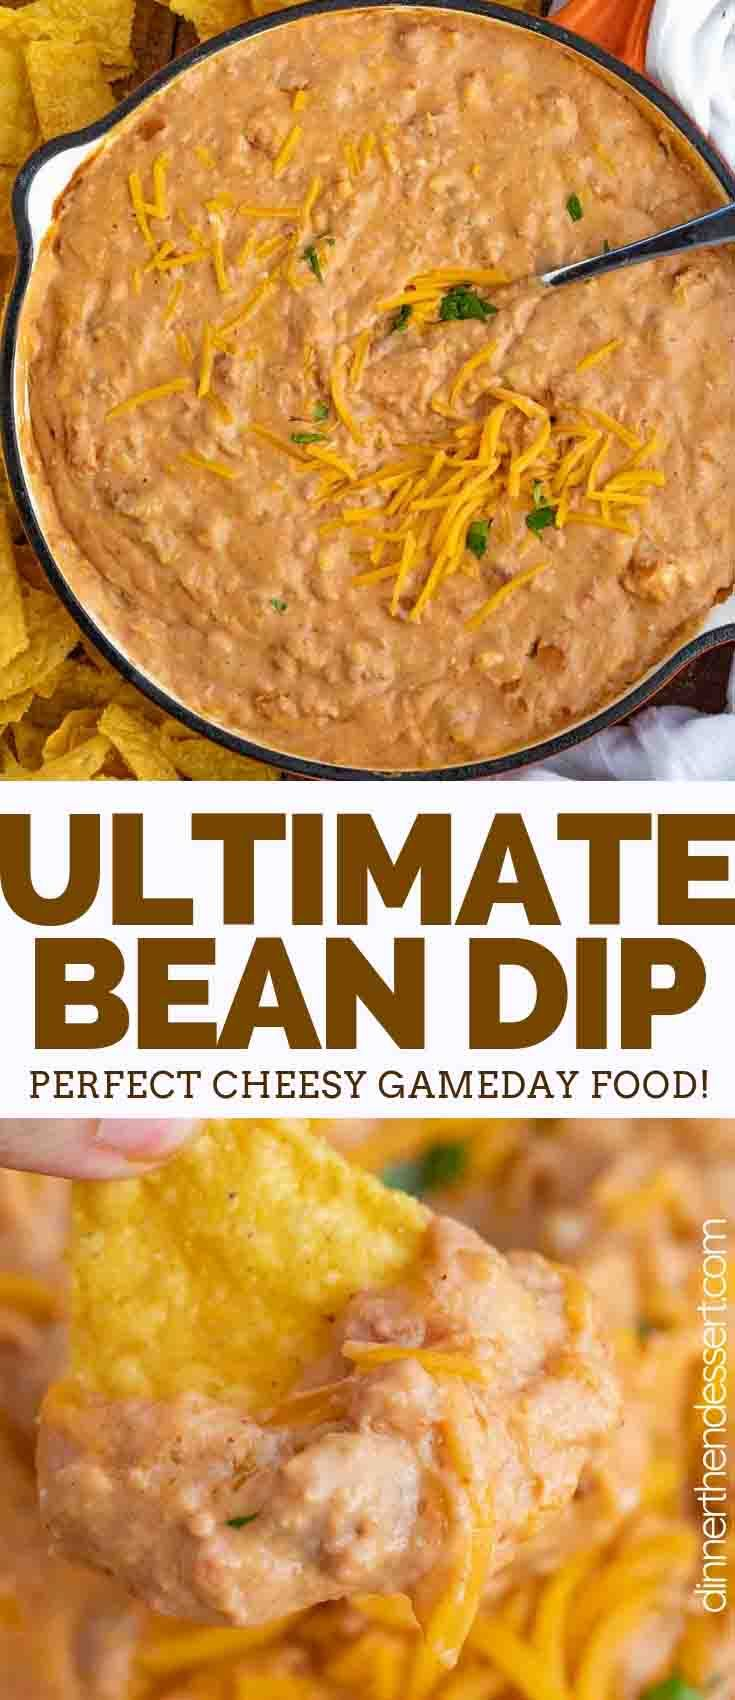 Ultimate Bean Dip made with refried beans, cream cheese, salsa, cheddar, and taco seasoning is the ultimate party dip, and is ready in only 5 minutes! #dip #appetizer #superbowl #party #tailgating #withcreamcheese #cheesy #homemade #best #taco #simple #dinnerthendessert #appetizersforparty